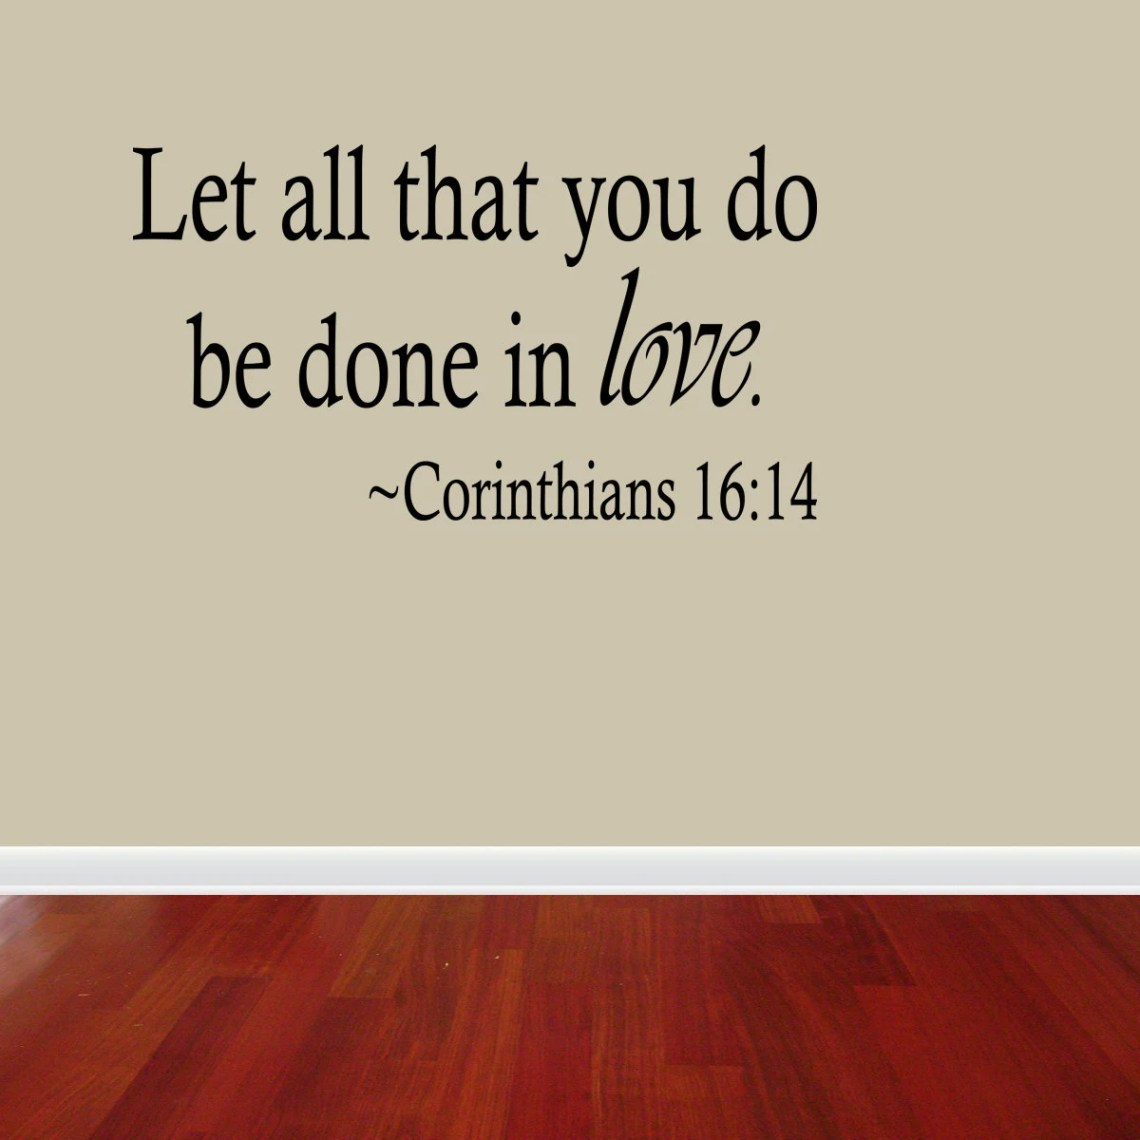 Download Let All That You Do Be Done In Love Corinthians 16:14 Vinyl